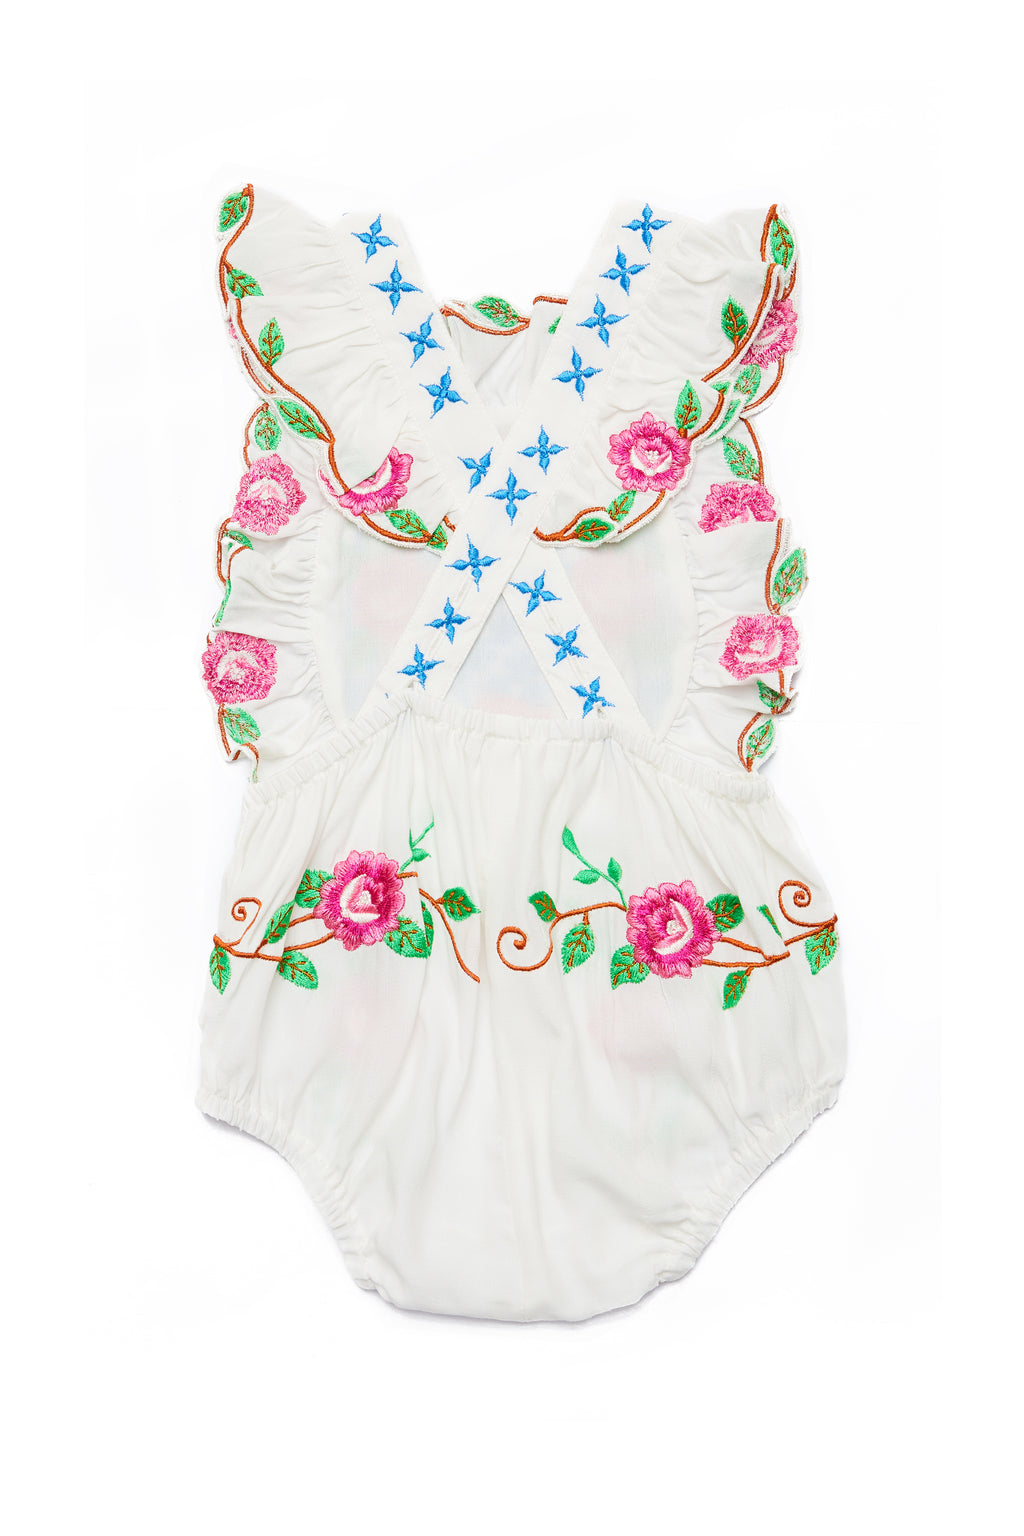 Fillyboo Mini - 'Is There Love On Mars?' - Baby Playsuit - Ivory